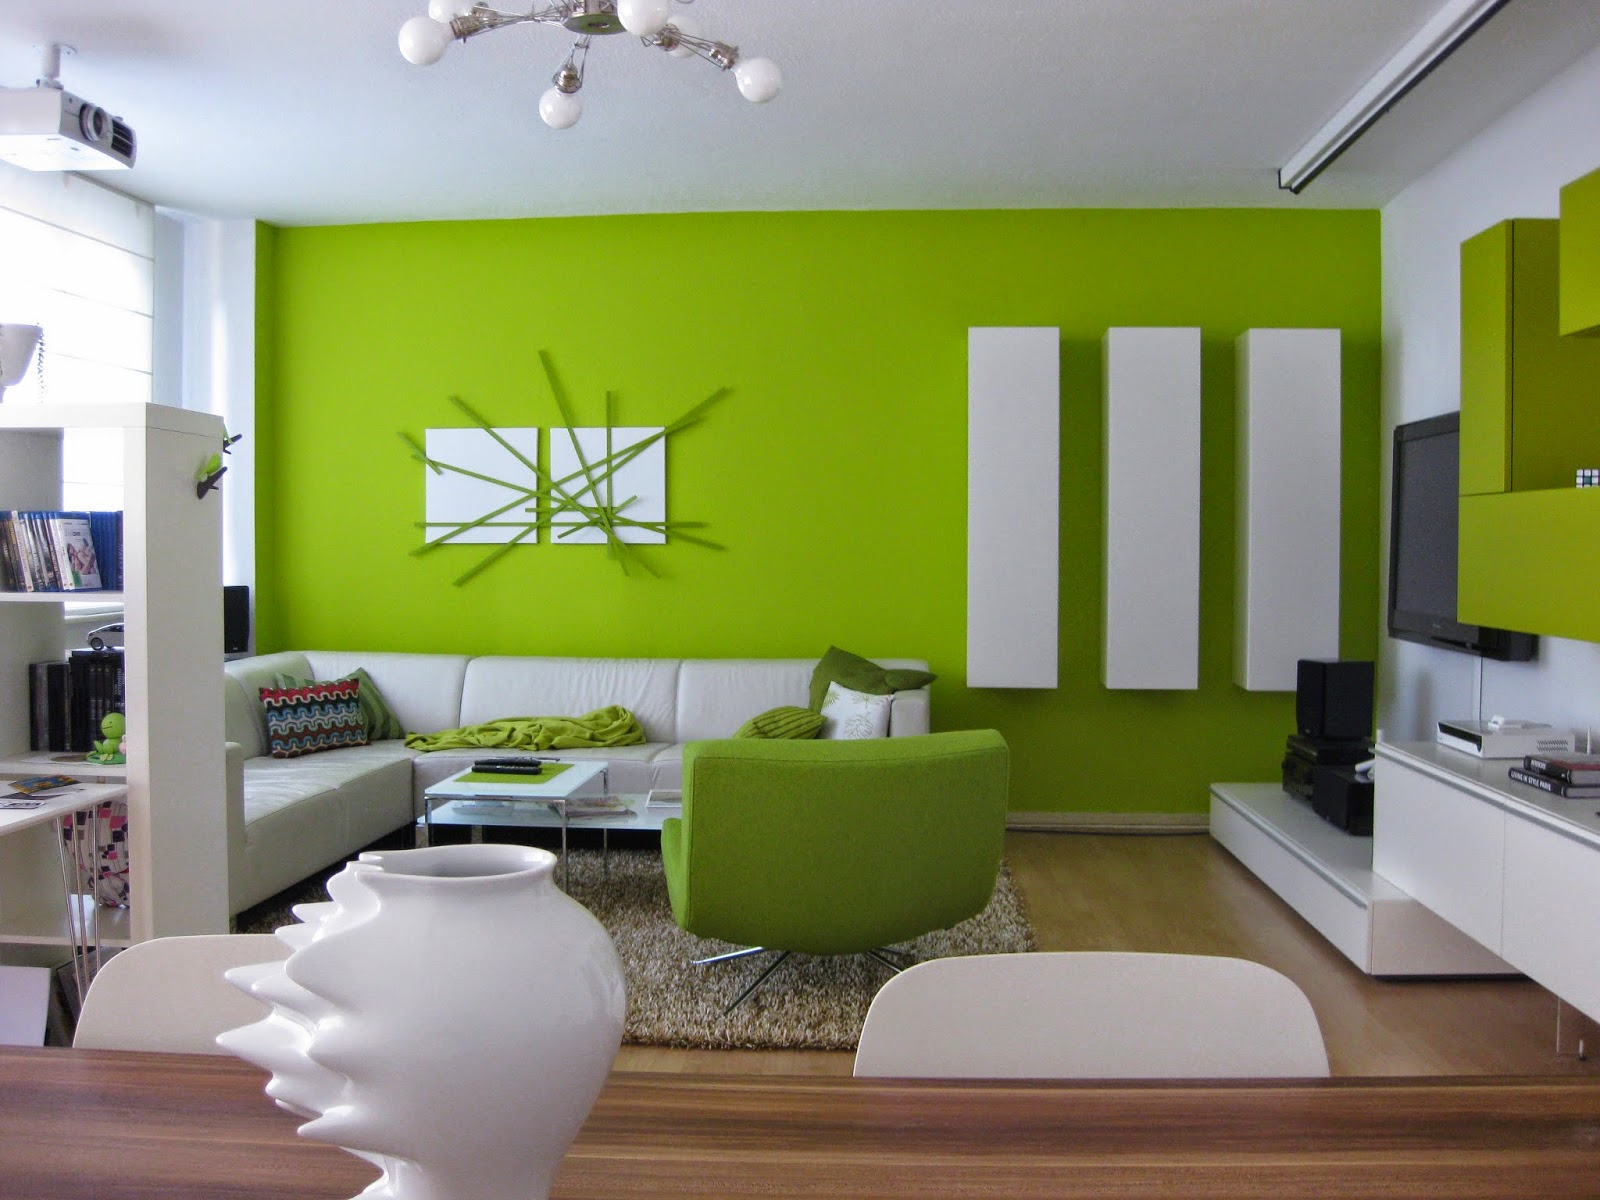 Fotos de sala en color verde salas con estilo for Decoracion de interiores pintura de paredes fotos